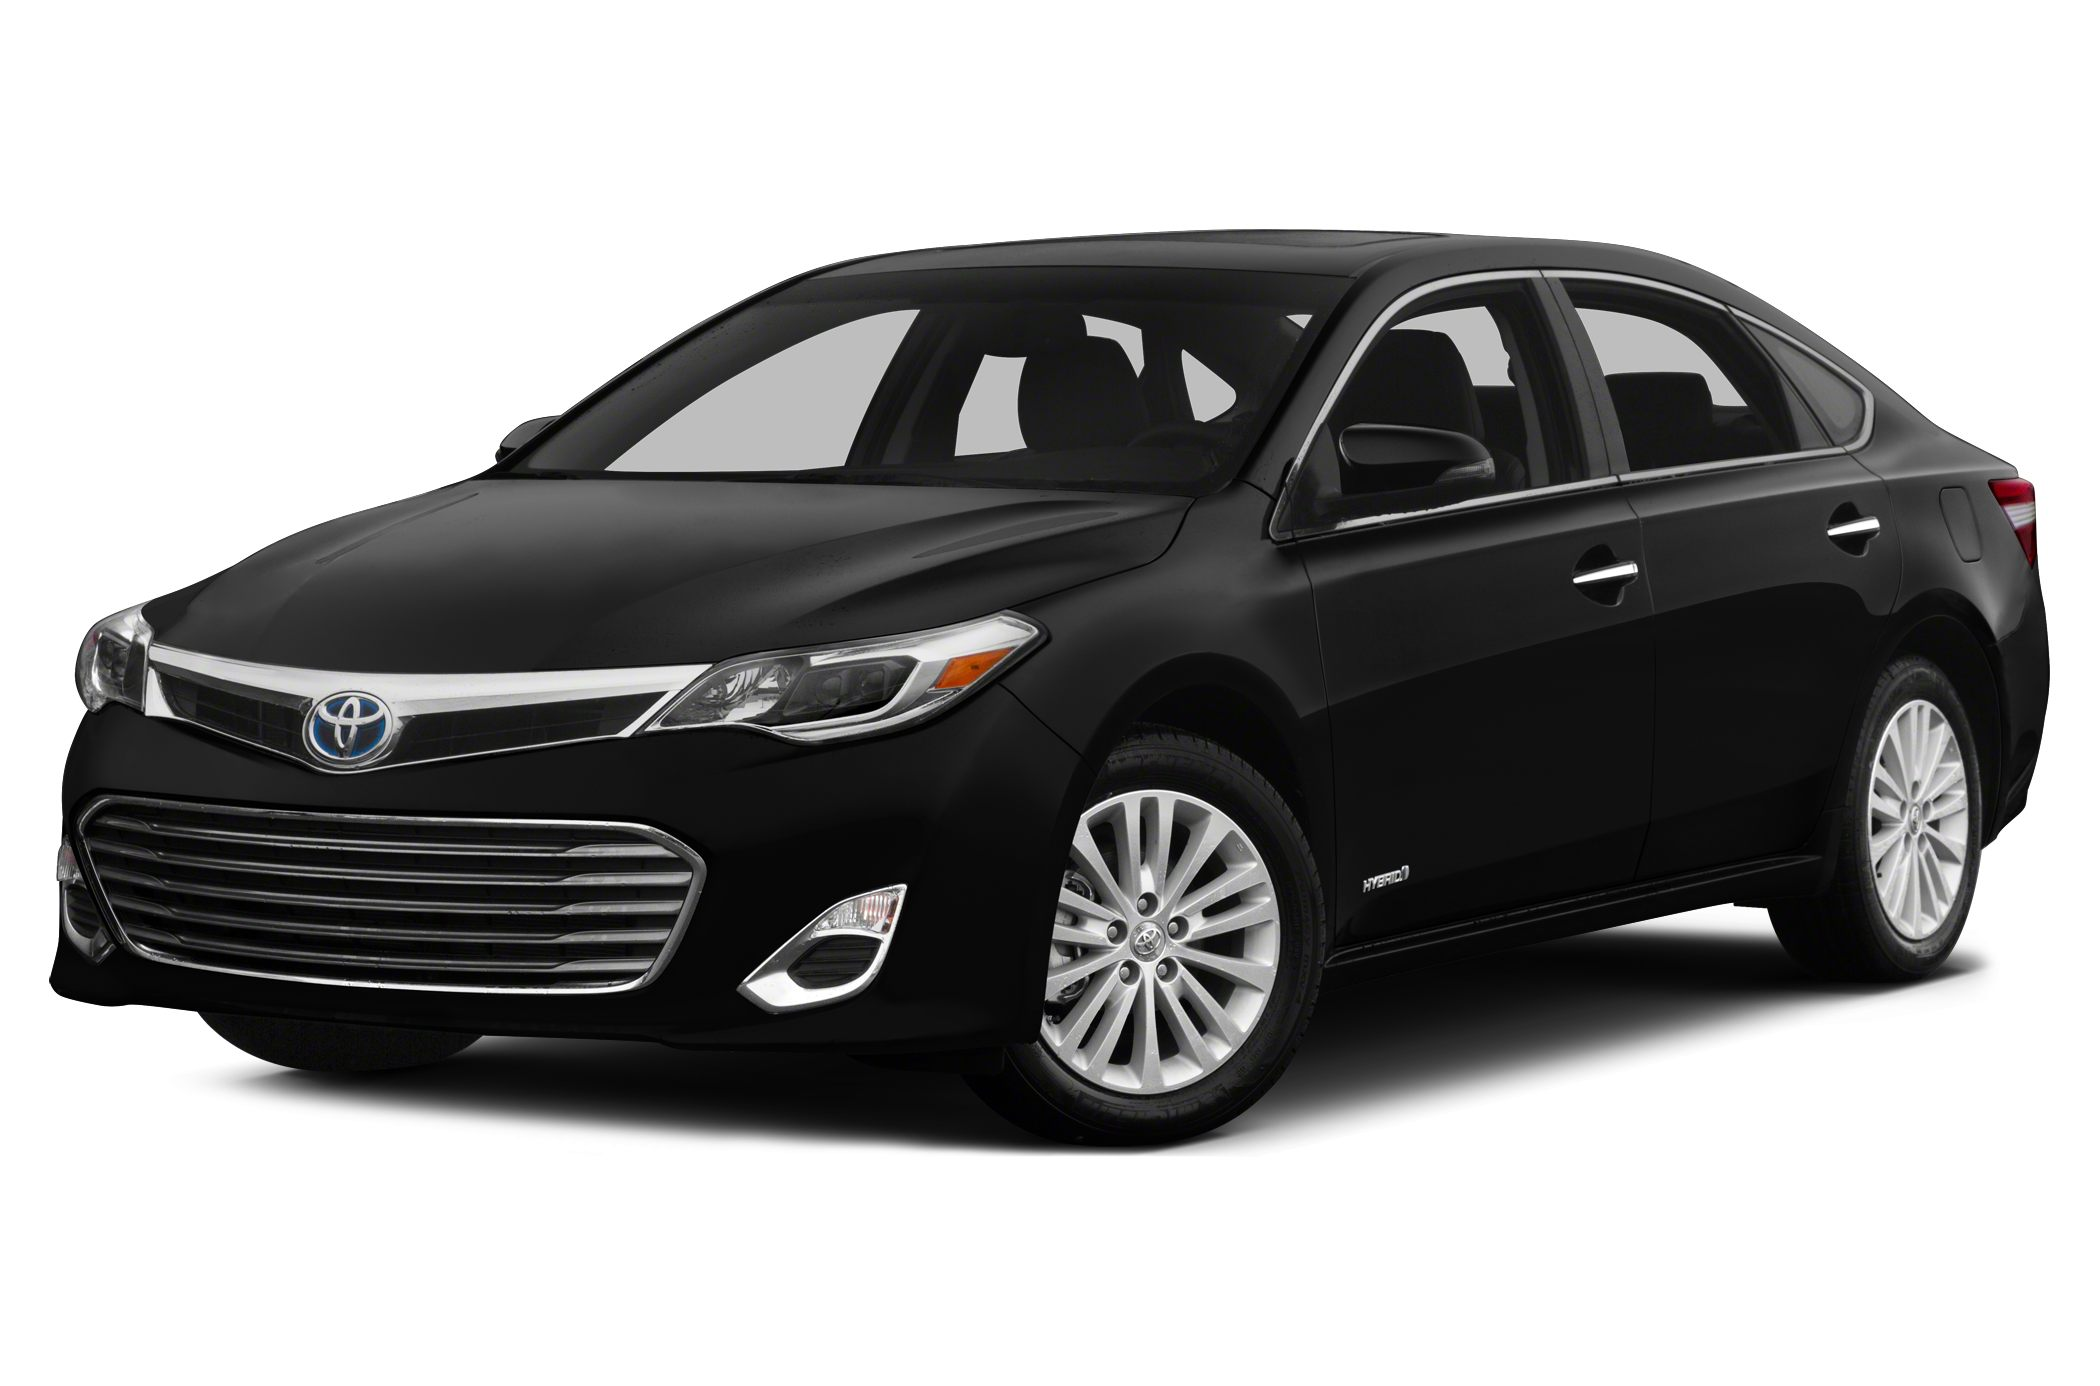 2014 Toyota Avalon Hybrid Limited Sedan for sale in Florence for $37,950 with 1,648 miles.